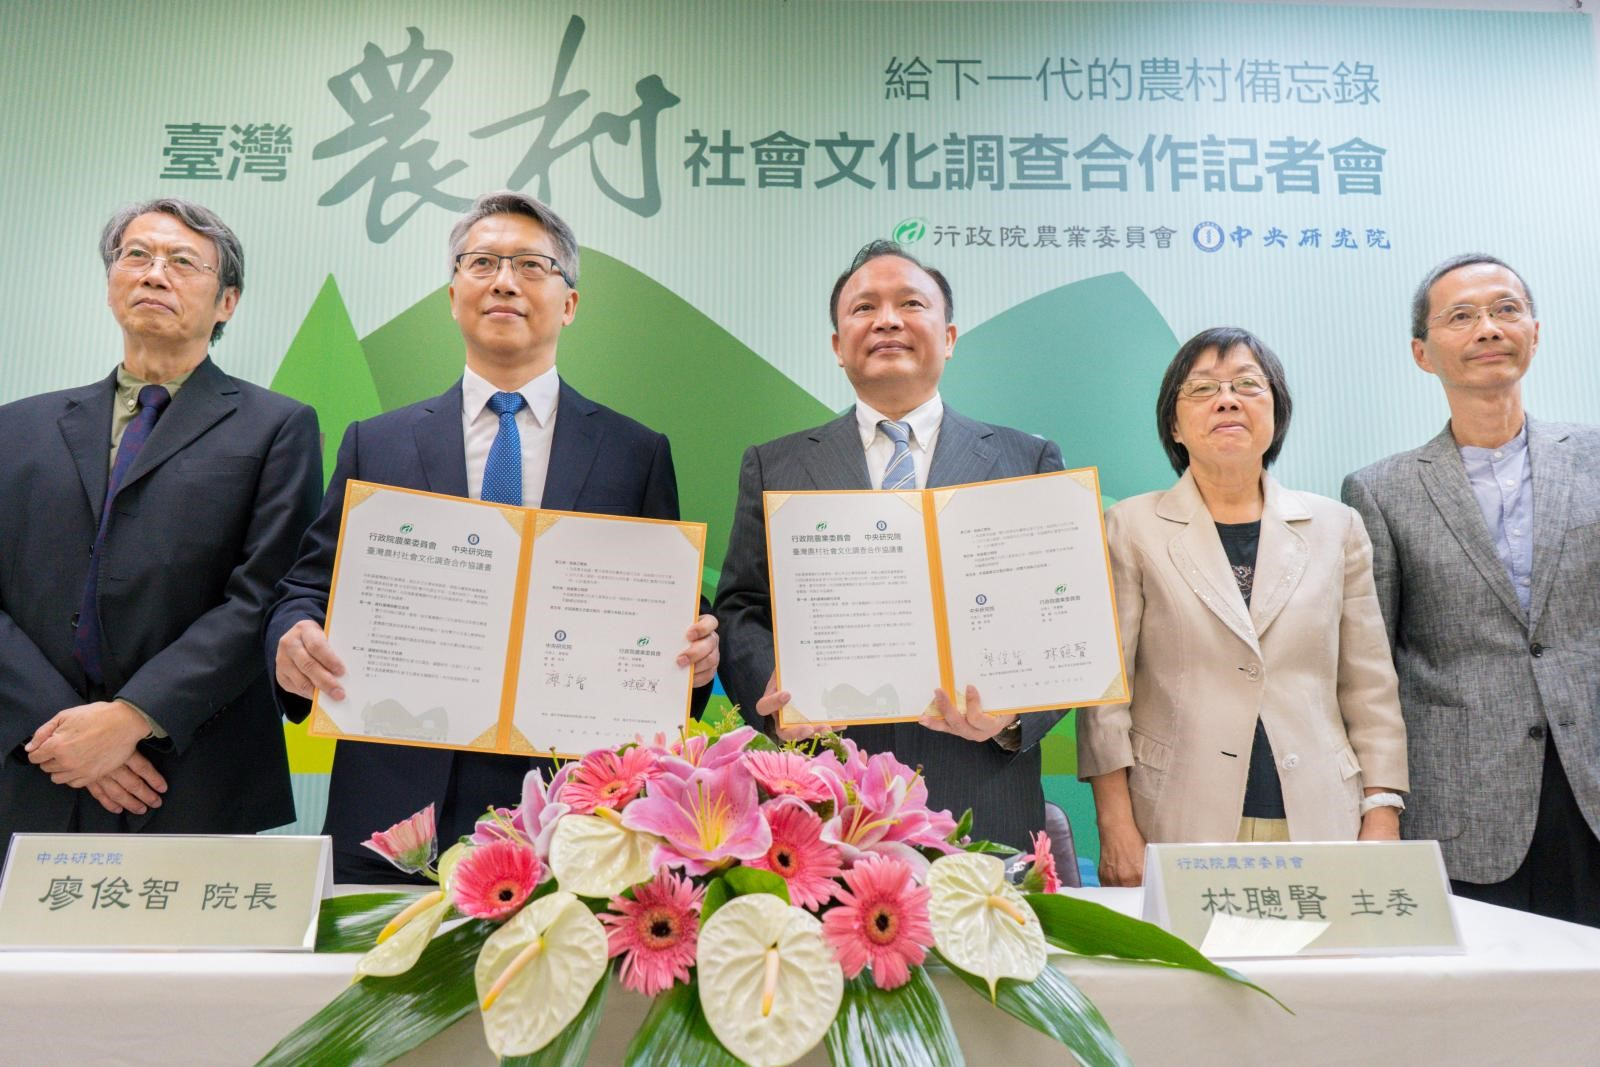 COA Minister Lin Tsung-hsien (2nd from right) and Academia Sinica President Dr. James C. Liao (1st from left)